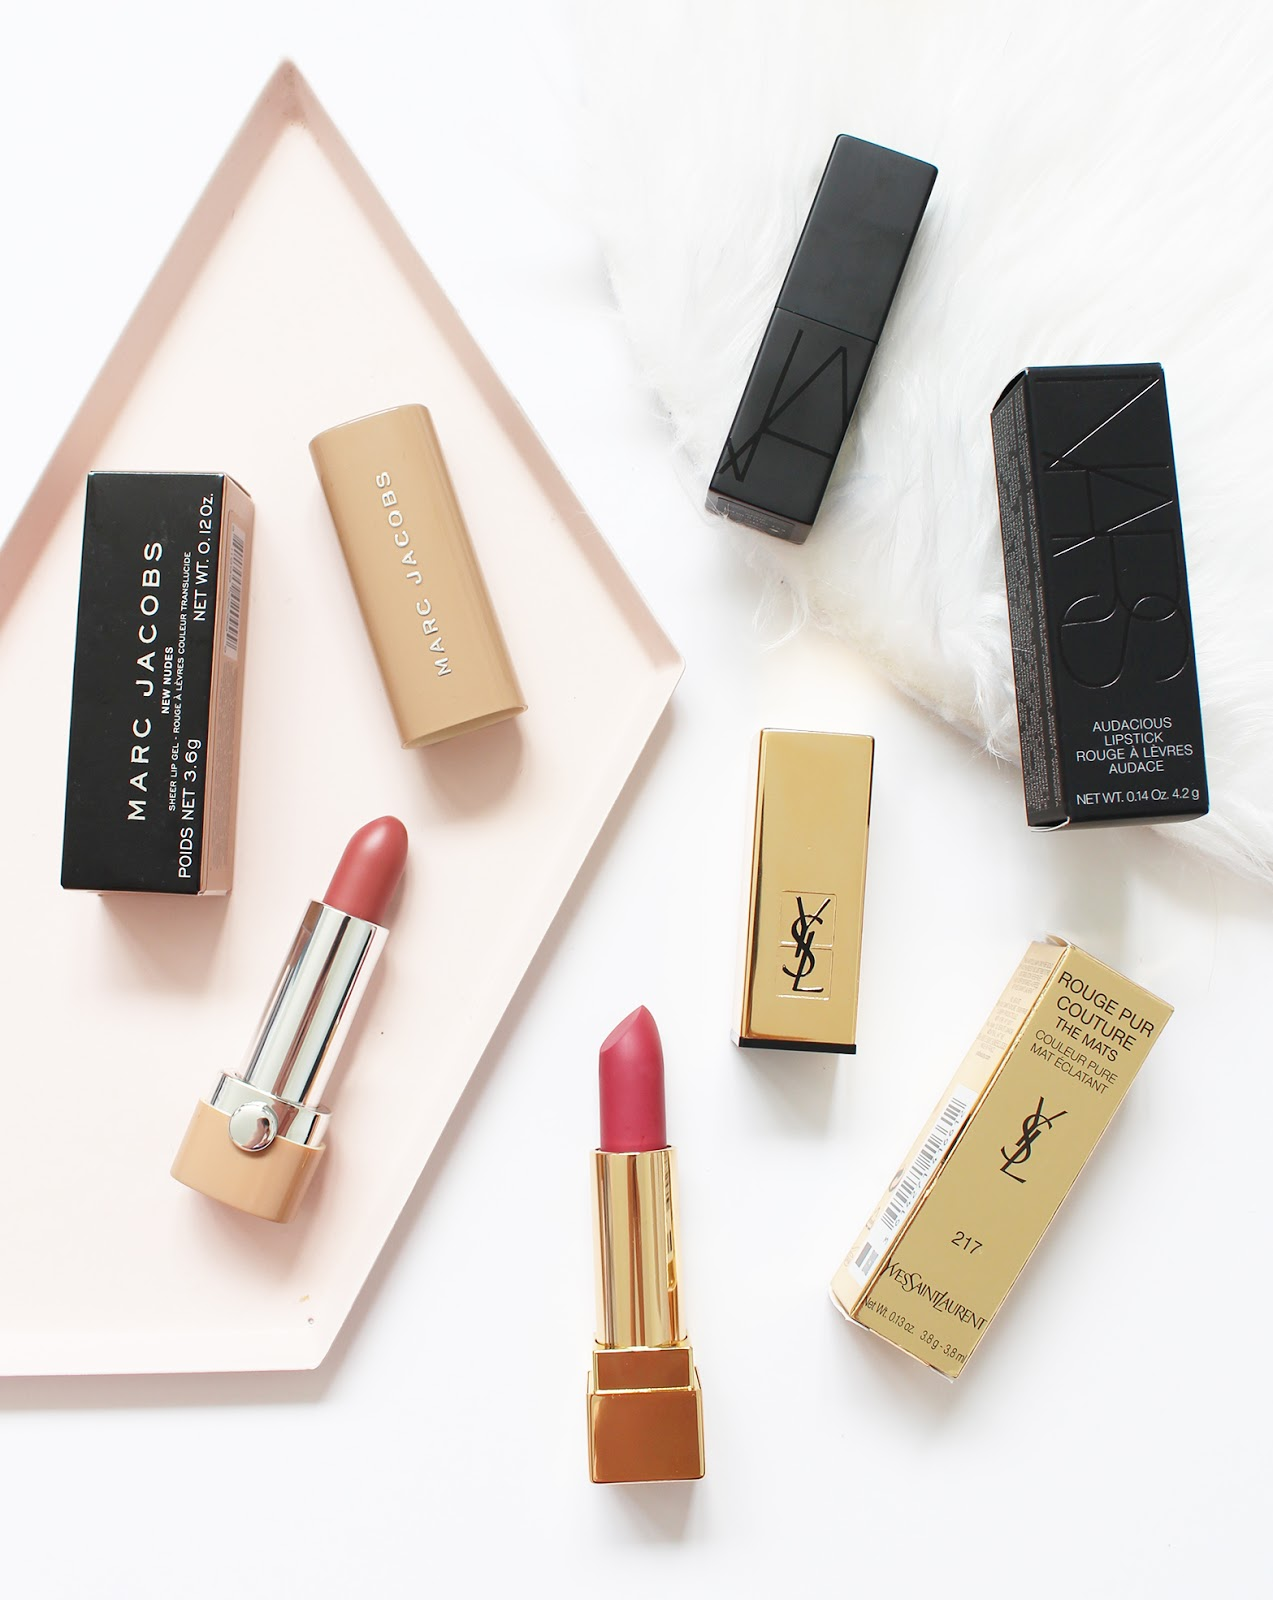 ARE LUXURY LIPSTICKS WORTH THE PRICE? - CassandraMyee